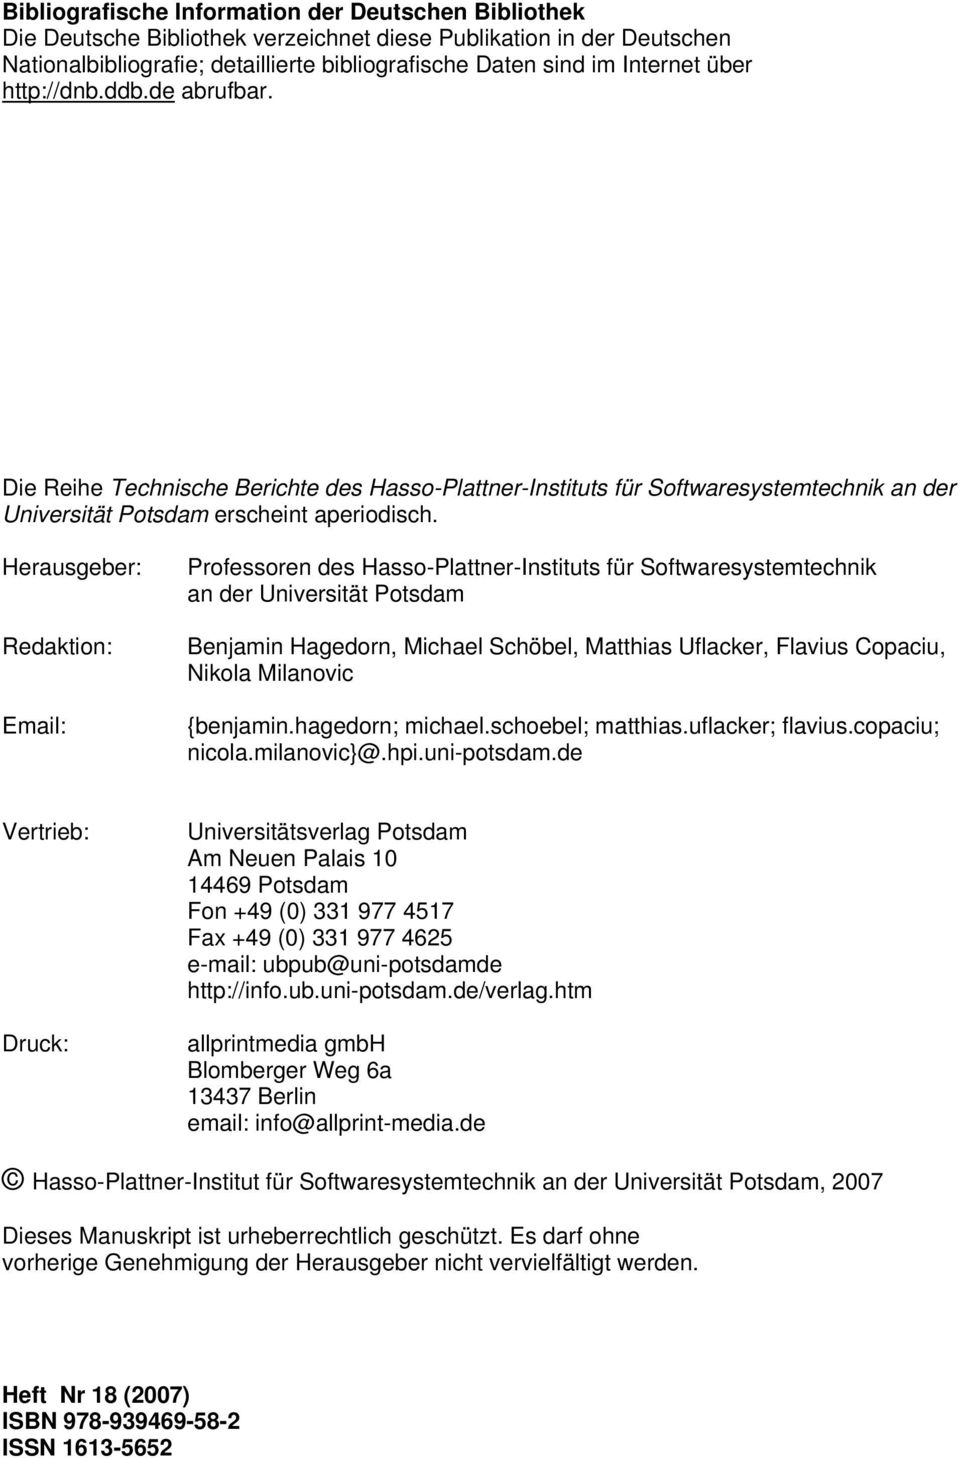 Herausgeber: Redaktion: Email: Professoren des Hasso-Plattner-Instituts für Softwaresystemtechnik an der Universität Potsdam Benjamin Hagedorn, Michael Schöbel, Matthias Uflacker, Flavius Copaciu,